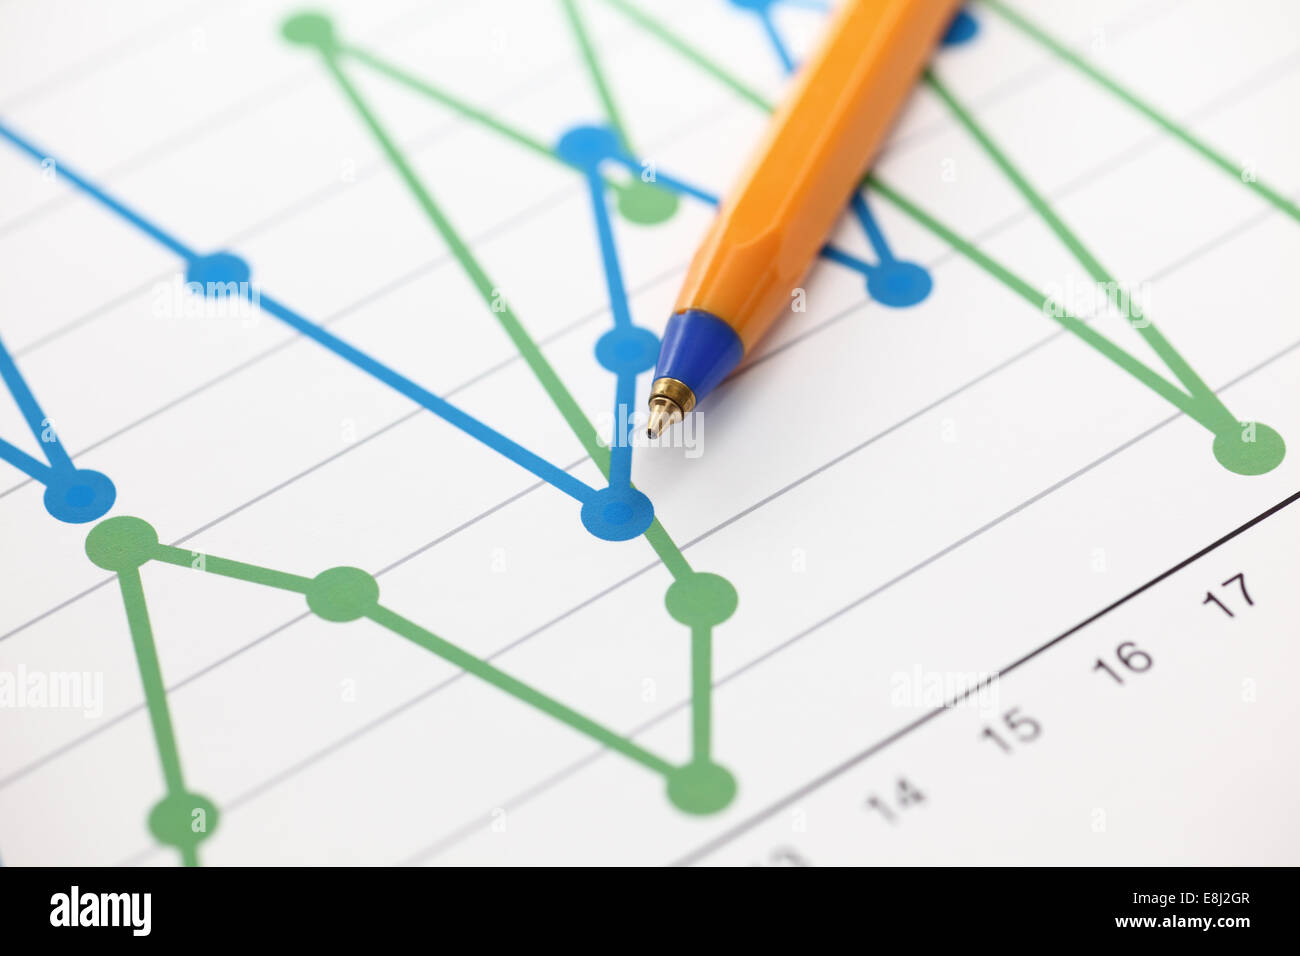 Analysis of financial statements (Line Graph). Business graph and ballpoint pen. Close-up. - Stock Image